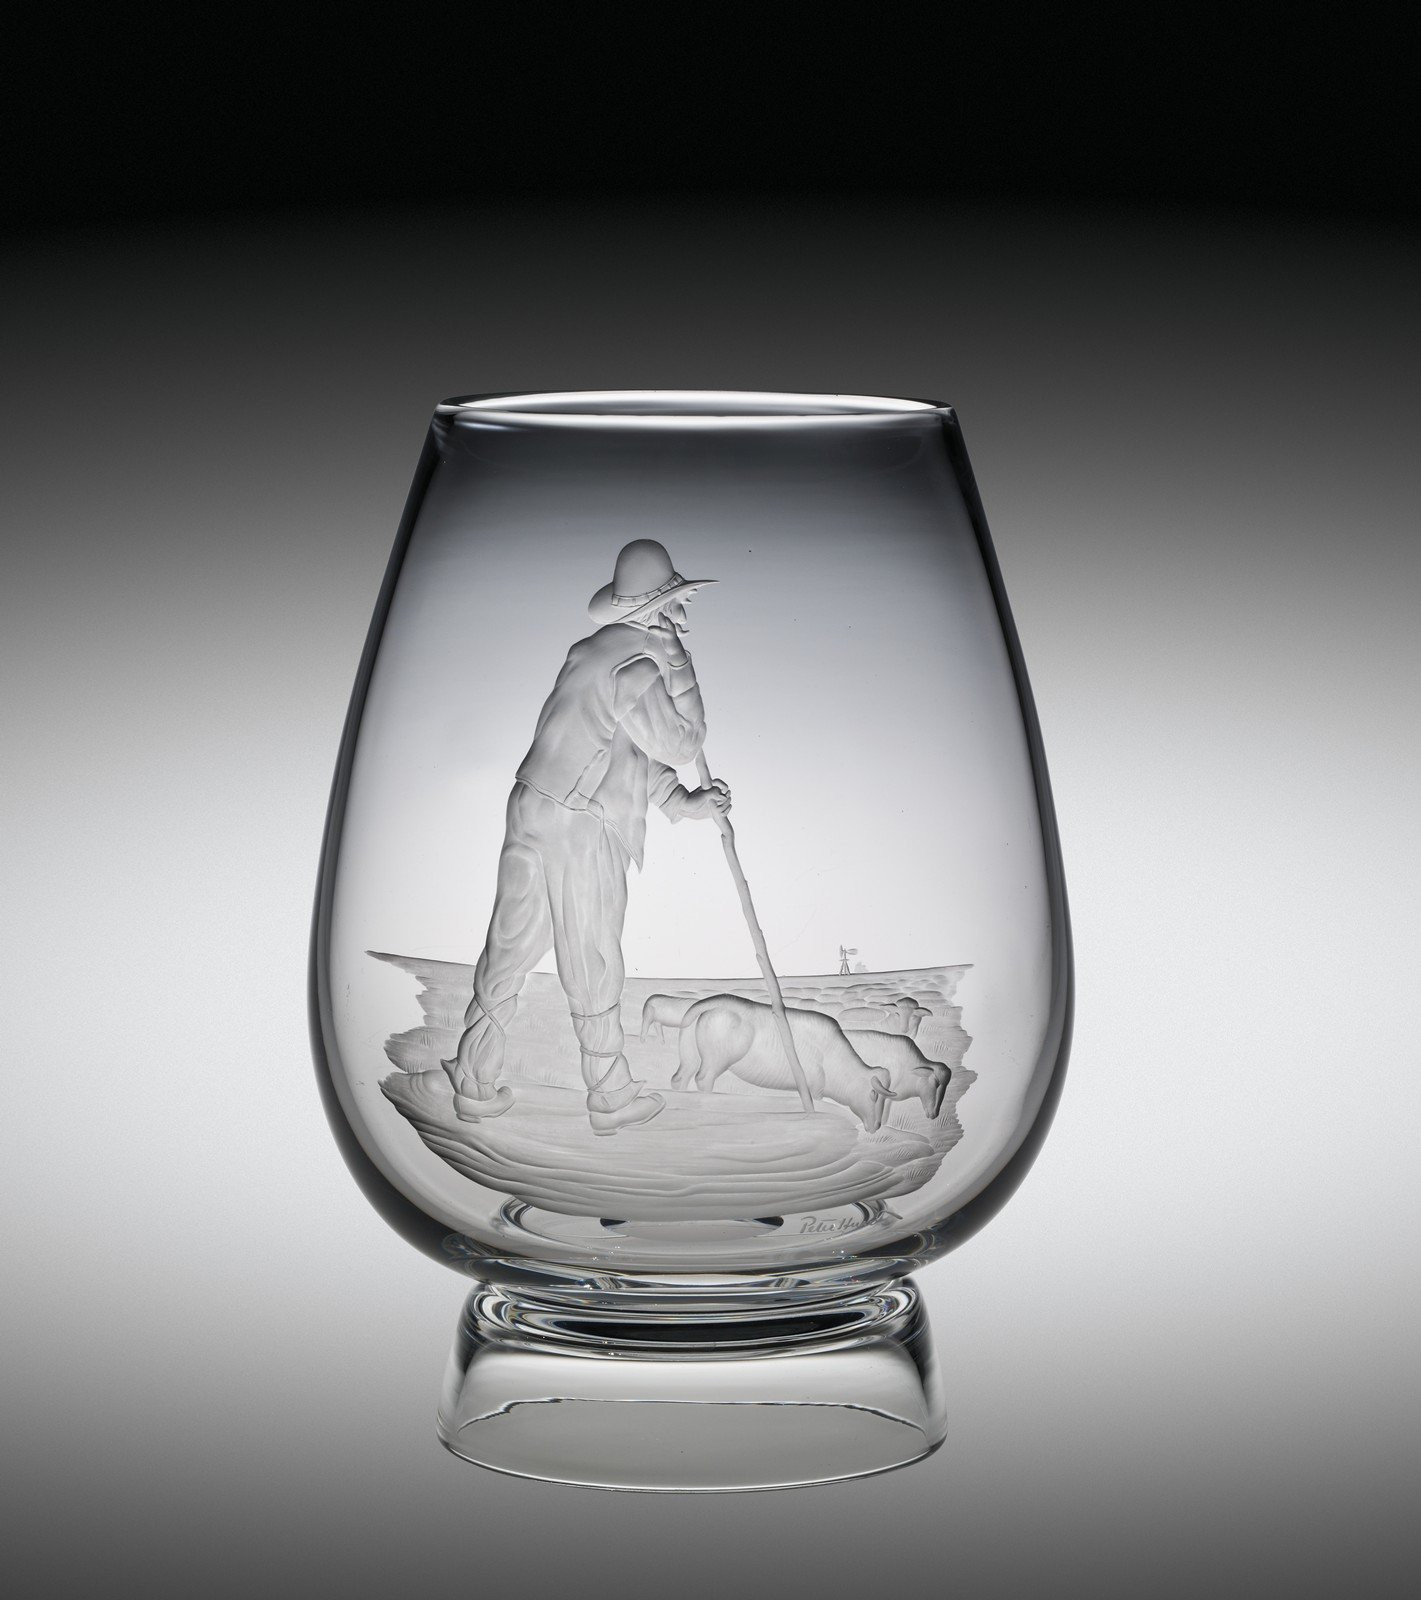 engraved glass vases cheap of collection search corning museum of glass intended for vase with rancher tending cattle